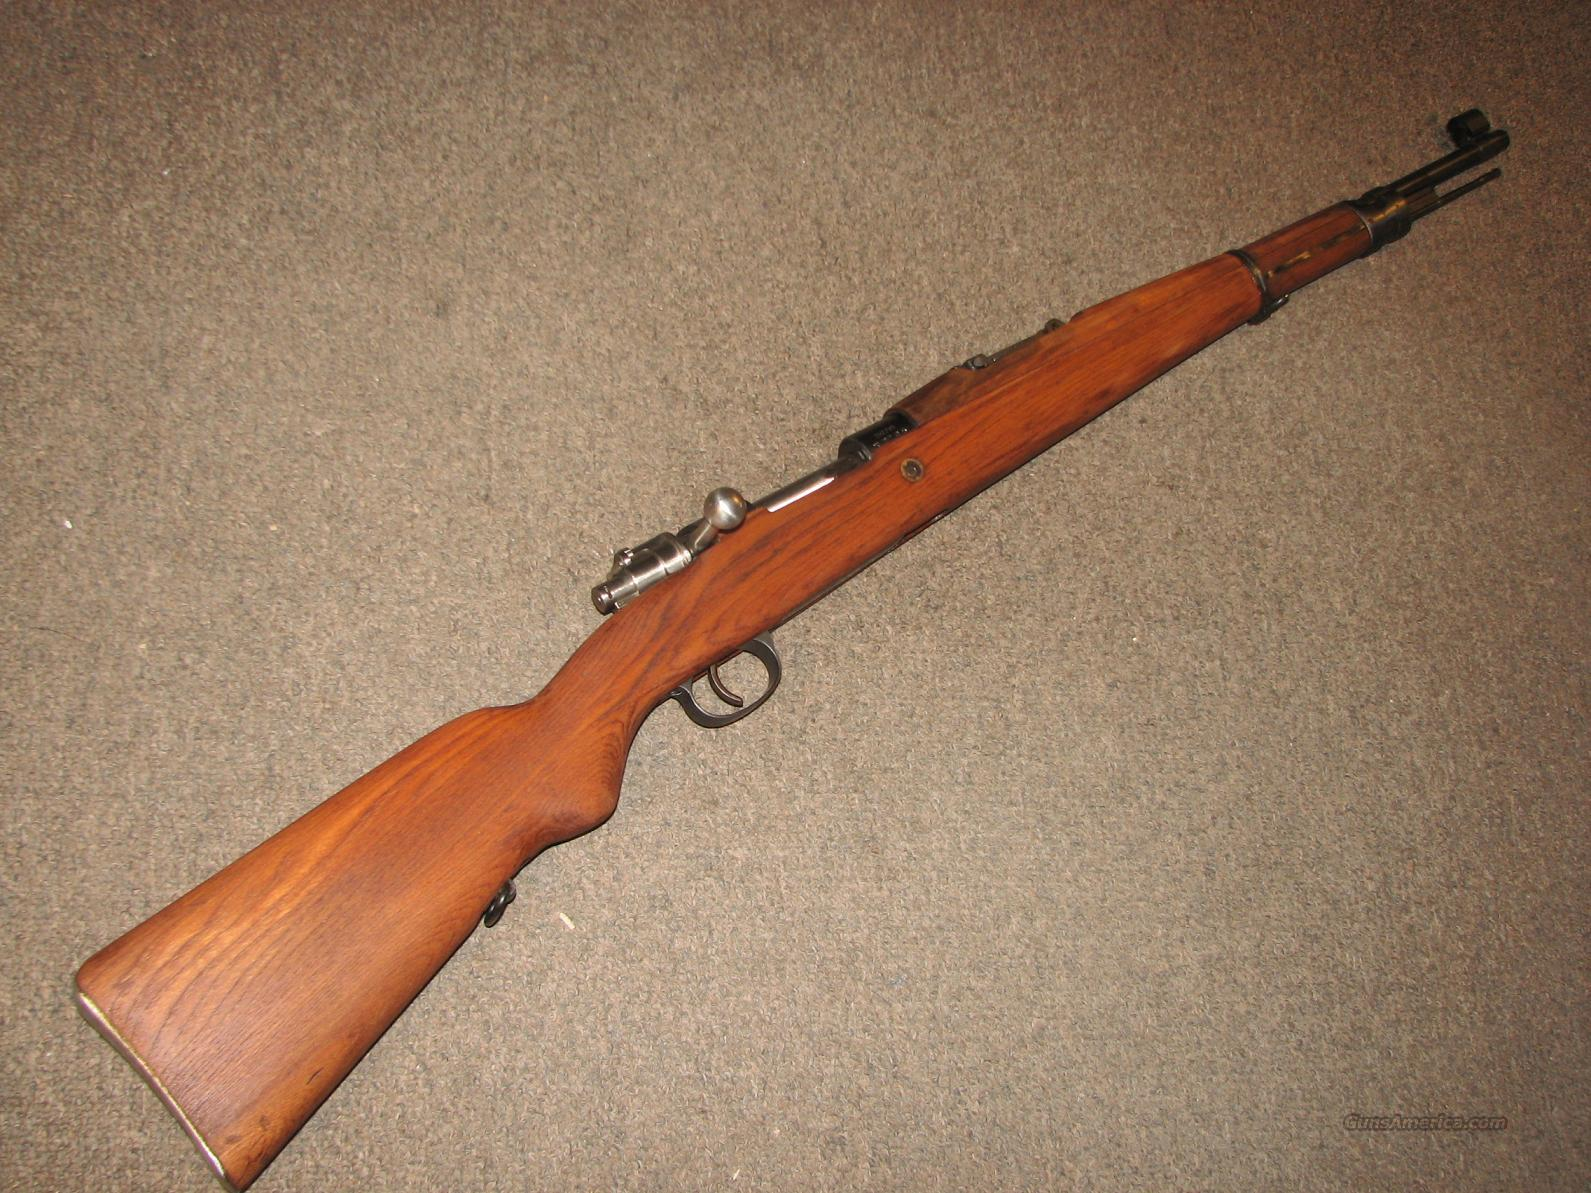 YUGO MAUSER 98 MODEL 24/47 8X57mm MAUSER  Guns > Rifles > Mauser Rifles > German